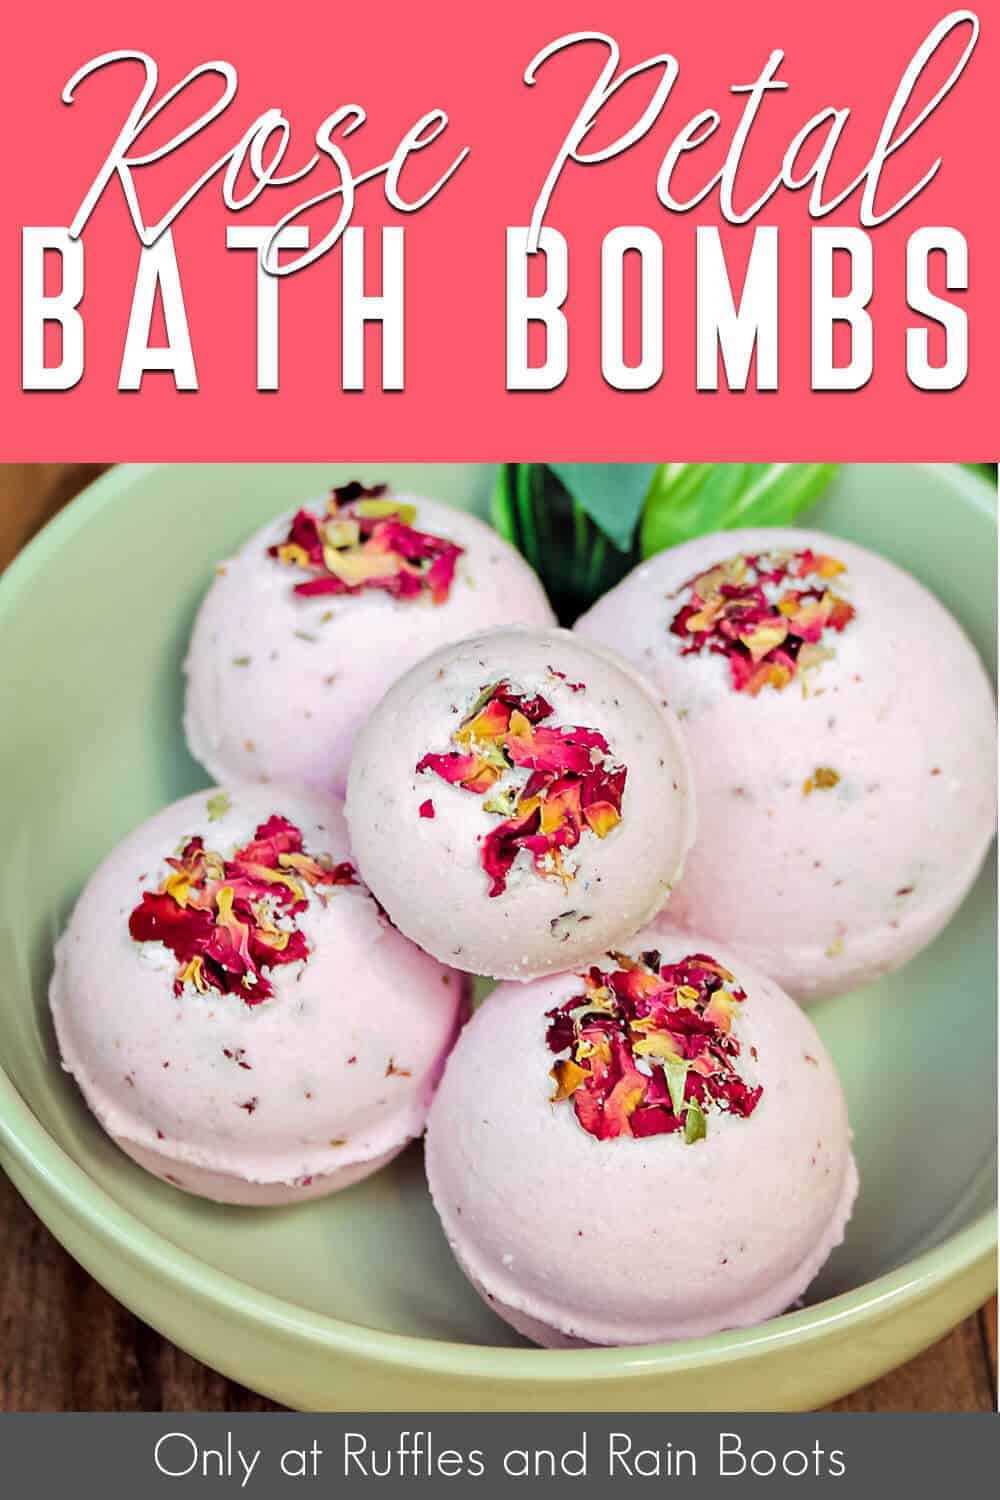 easy diy bath bomb recipe with roses with text which reads rose petal bath bombs